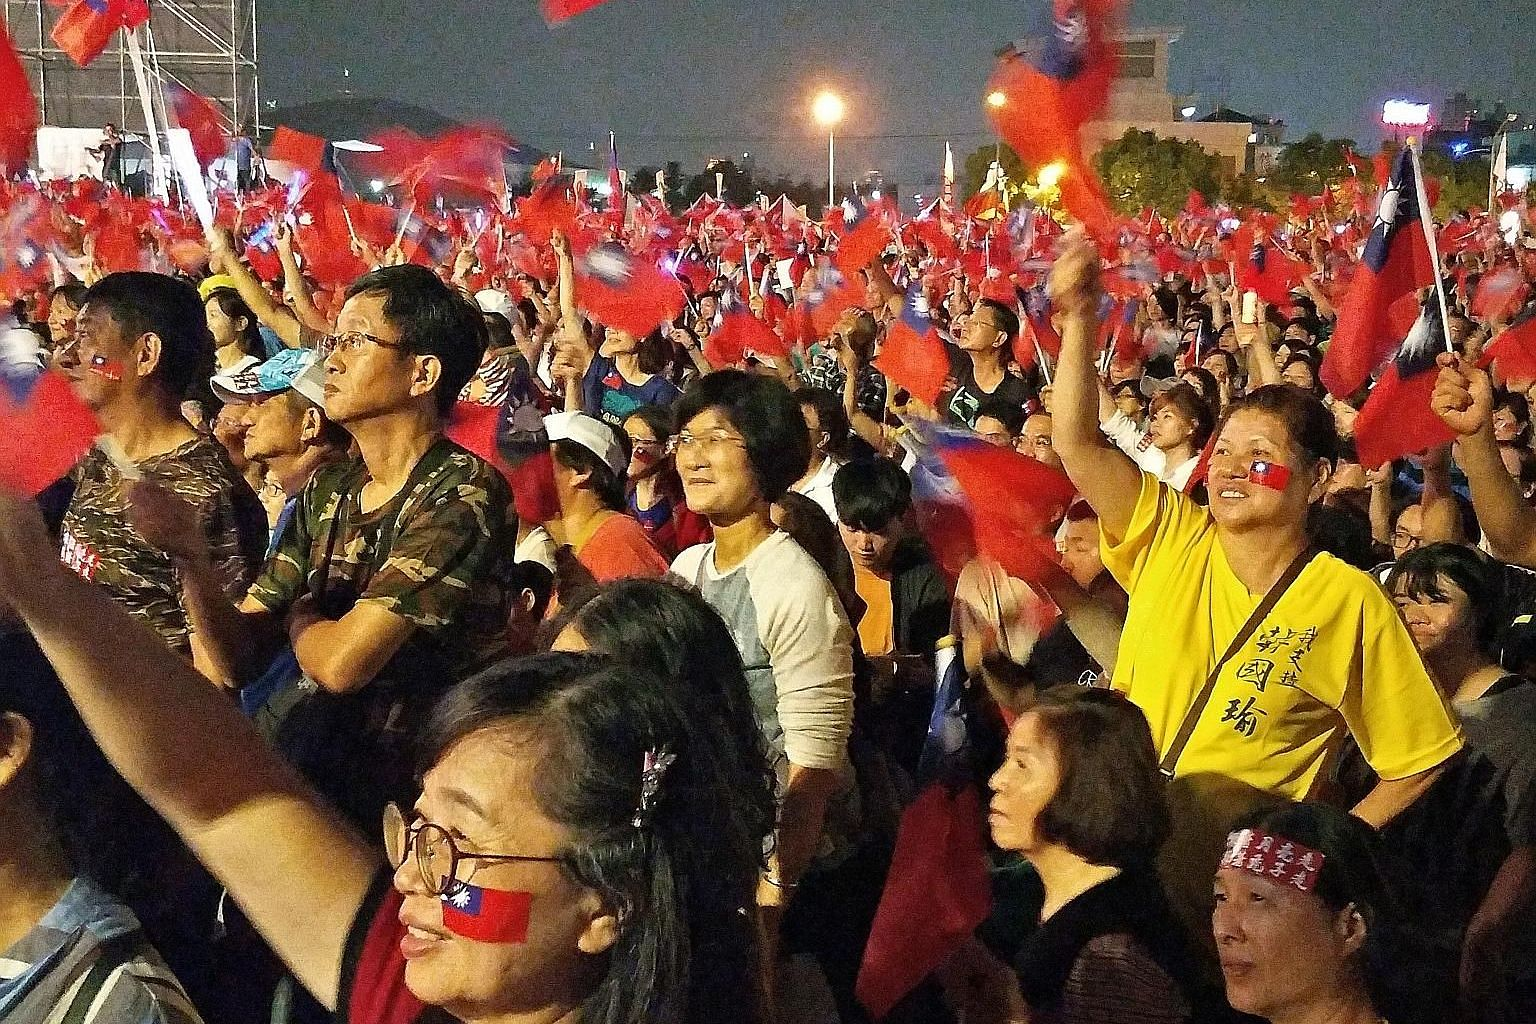 """An estimated 120,000 supporters of Taiwan's latest political star, Mr Han Kuo-yu, waving the island's blue-and-red flags in a campaign rally last night. The crowd blew horns and shouted """"dong suan! dong suan! (elected, elected!)"""" as Mr Han, a 61-year"""